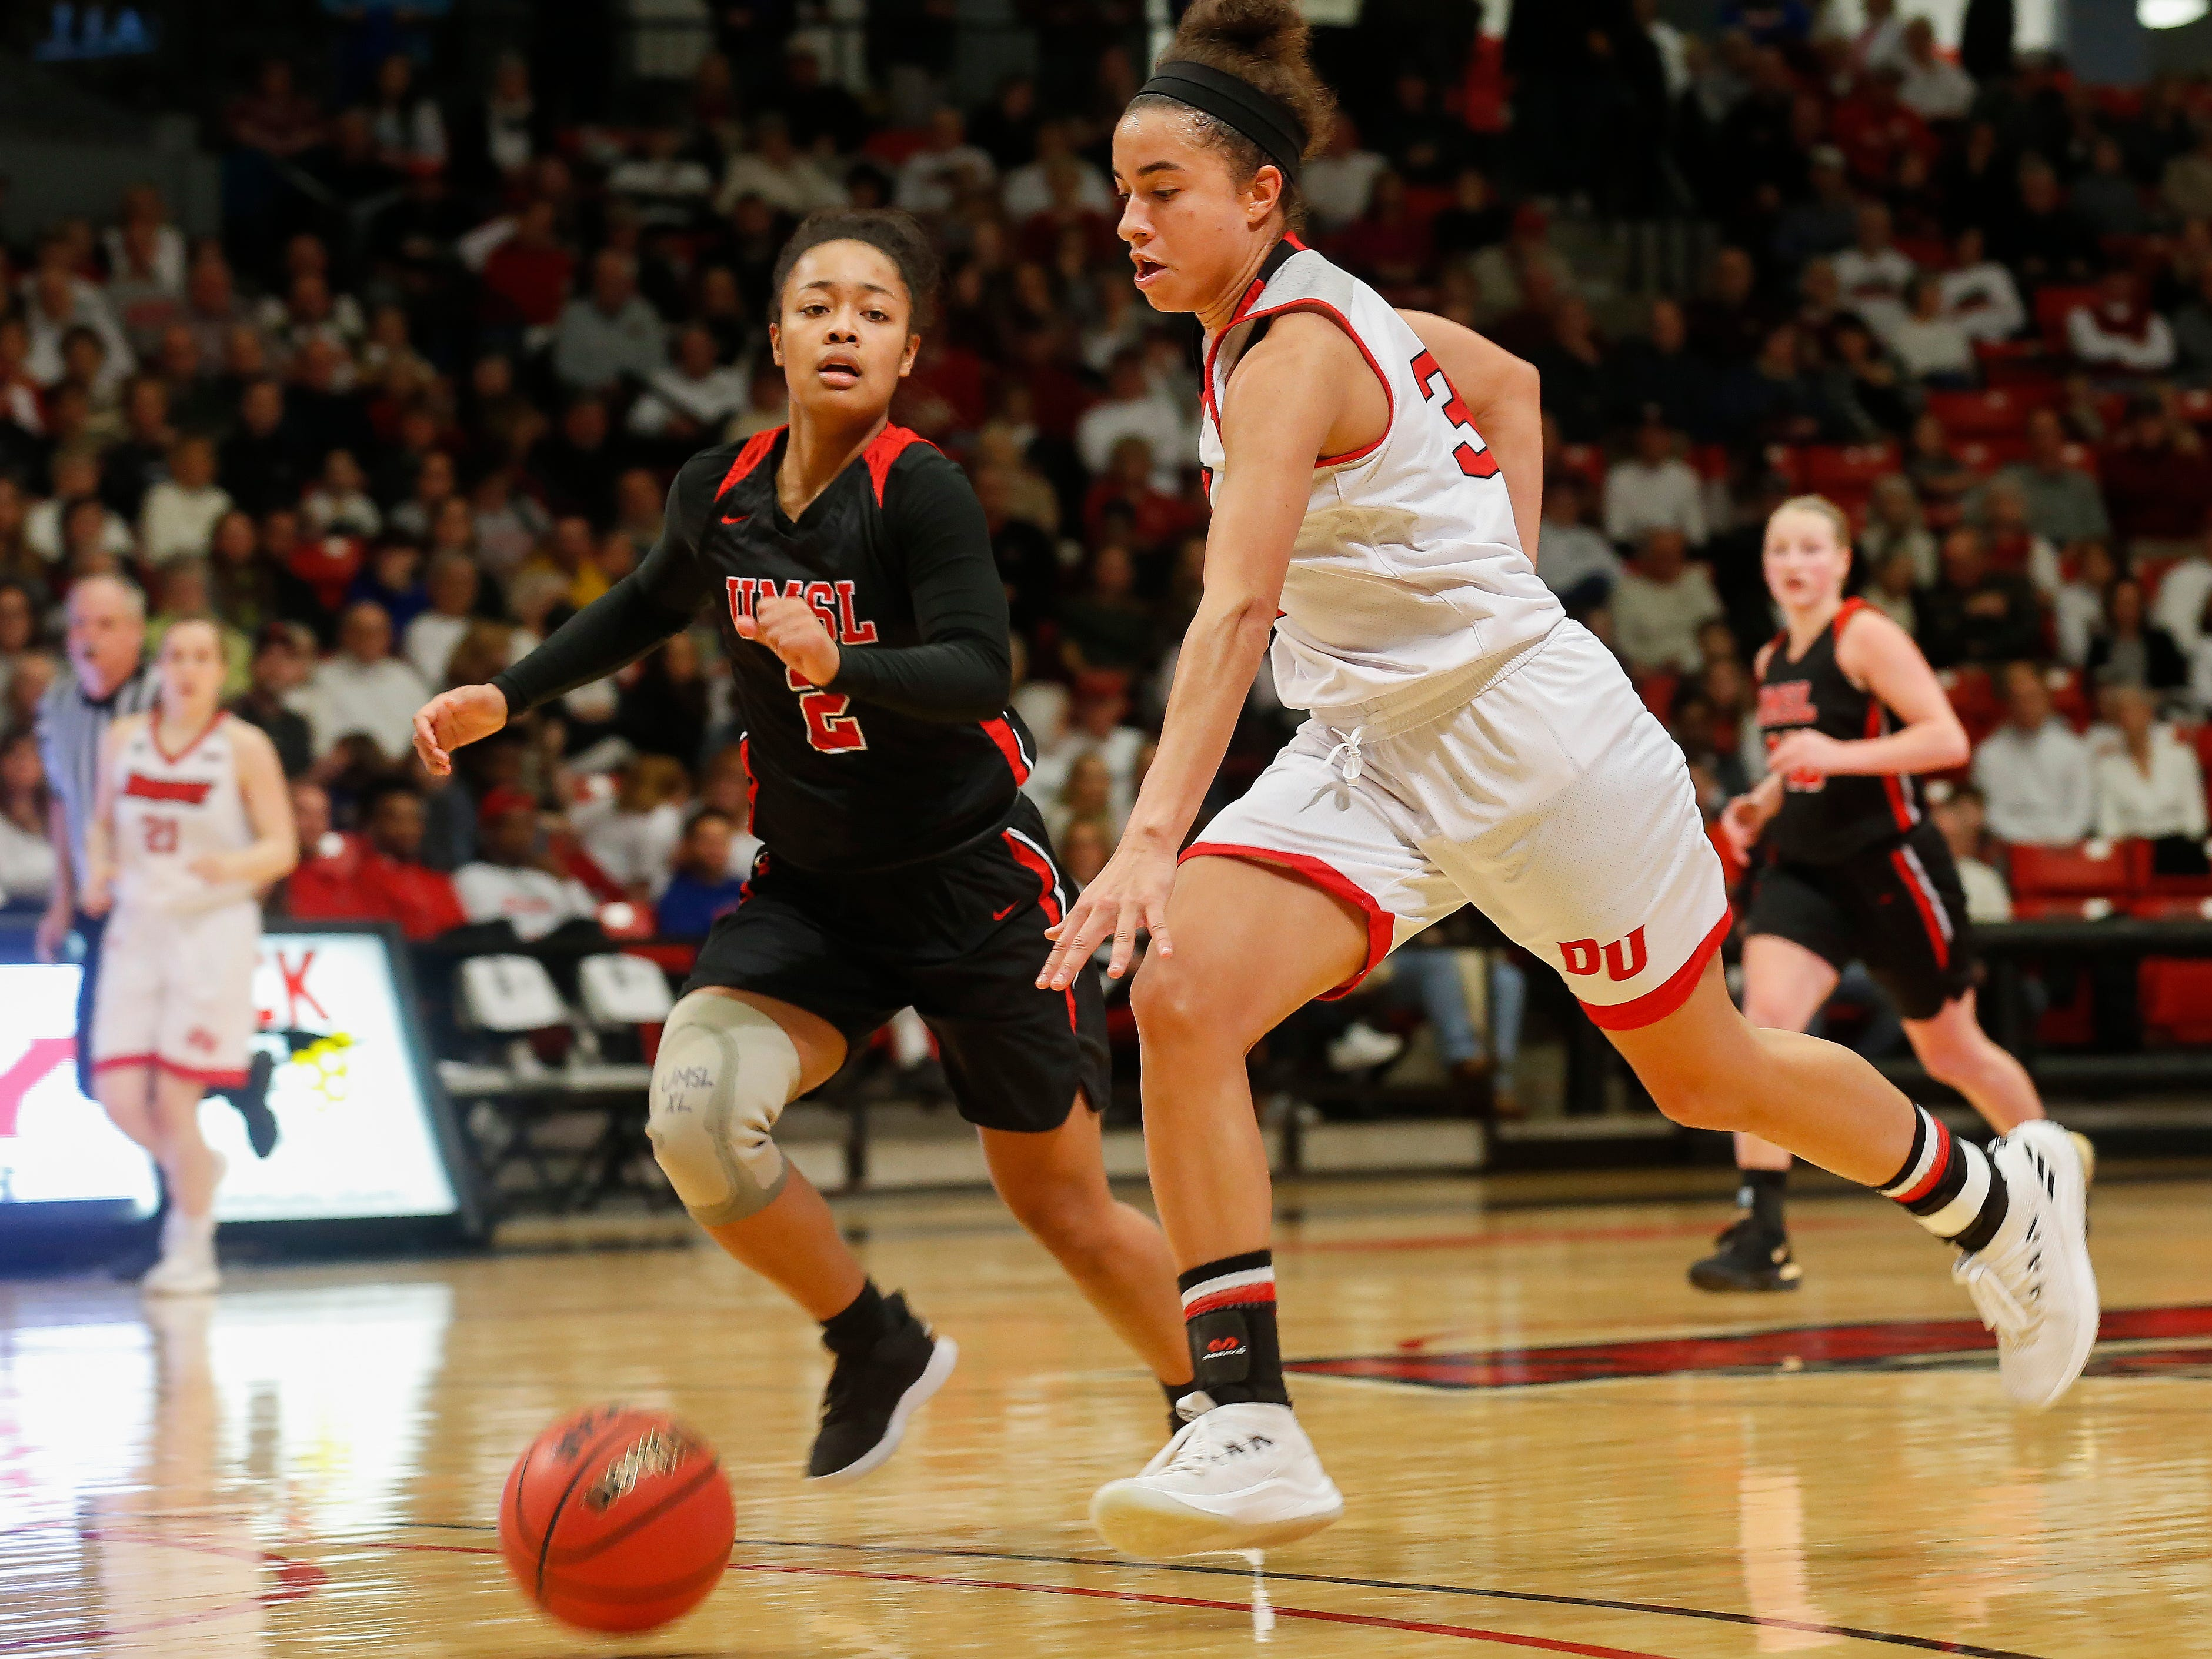 The Lady Panthers defeated the University of Missouri St. Louis Tritons 77-44 during the Overflow the O game at the O'Reilly Family Event Center on Saturday, Feb. 9, 2019.